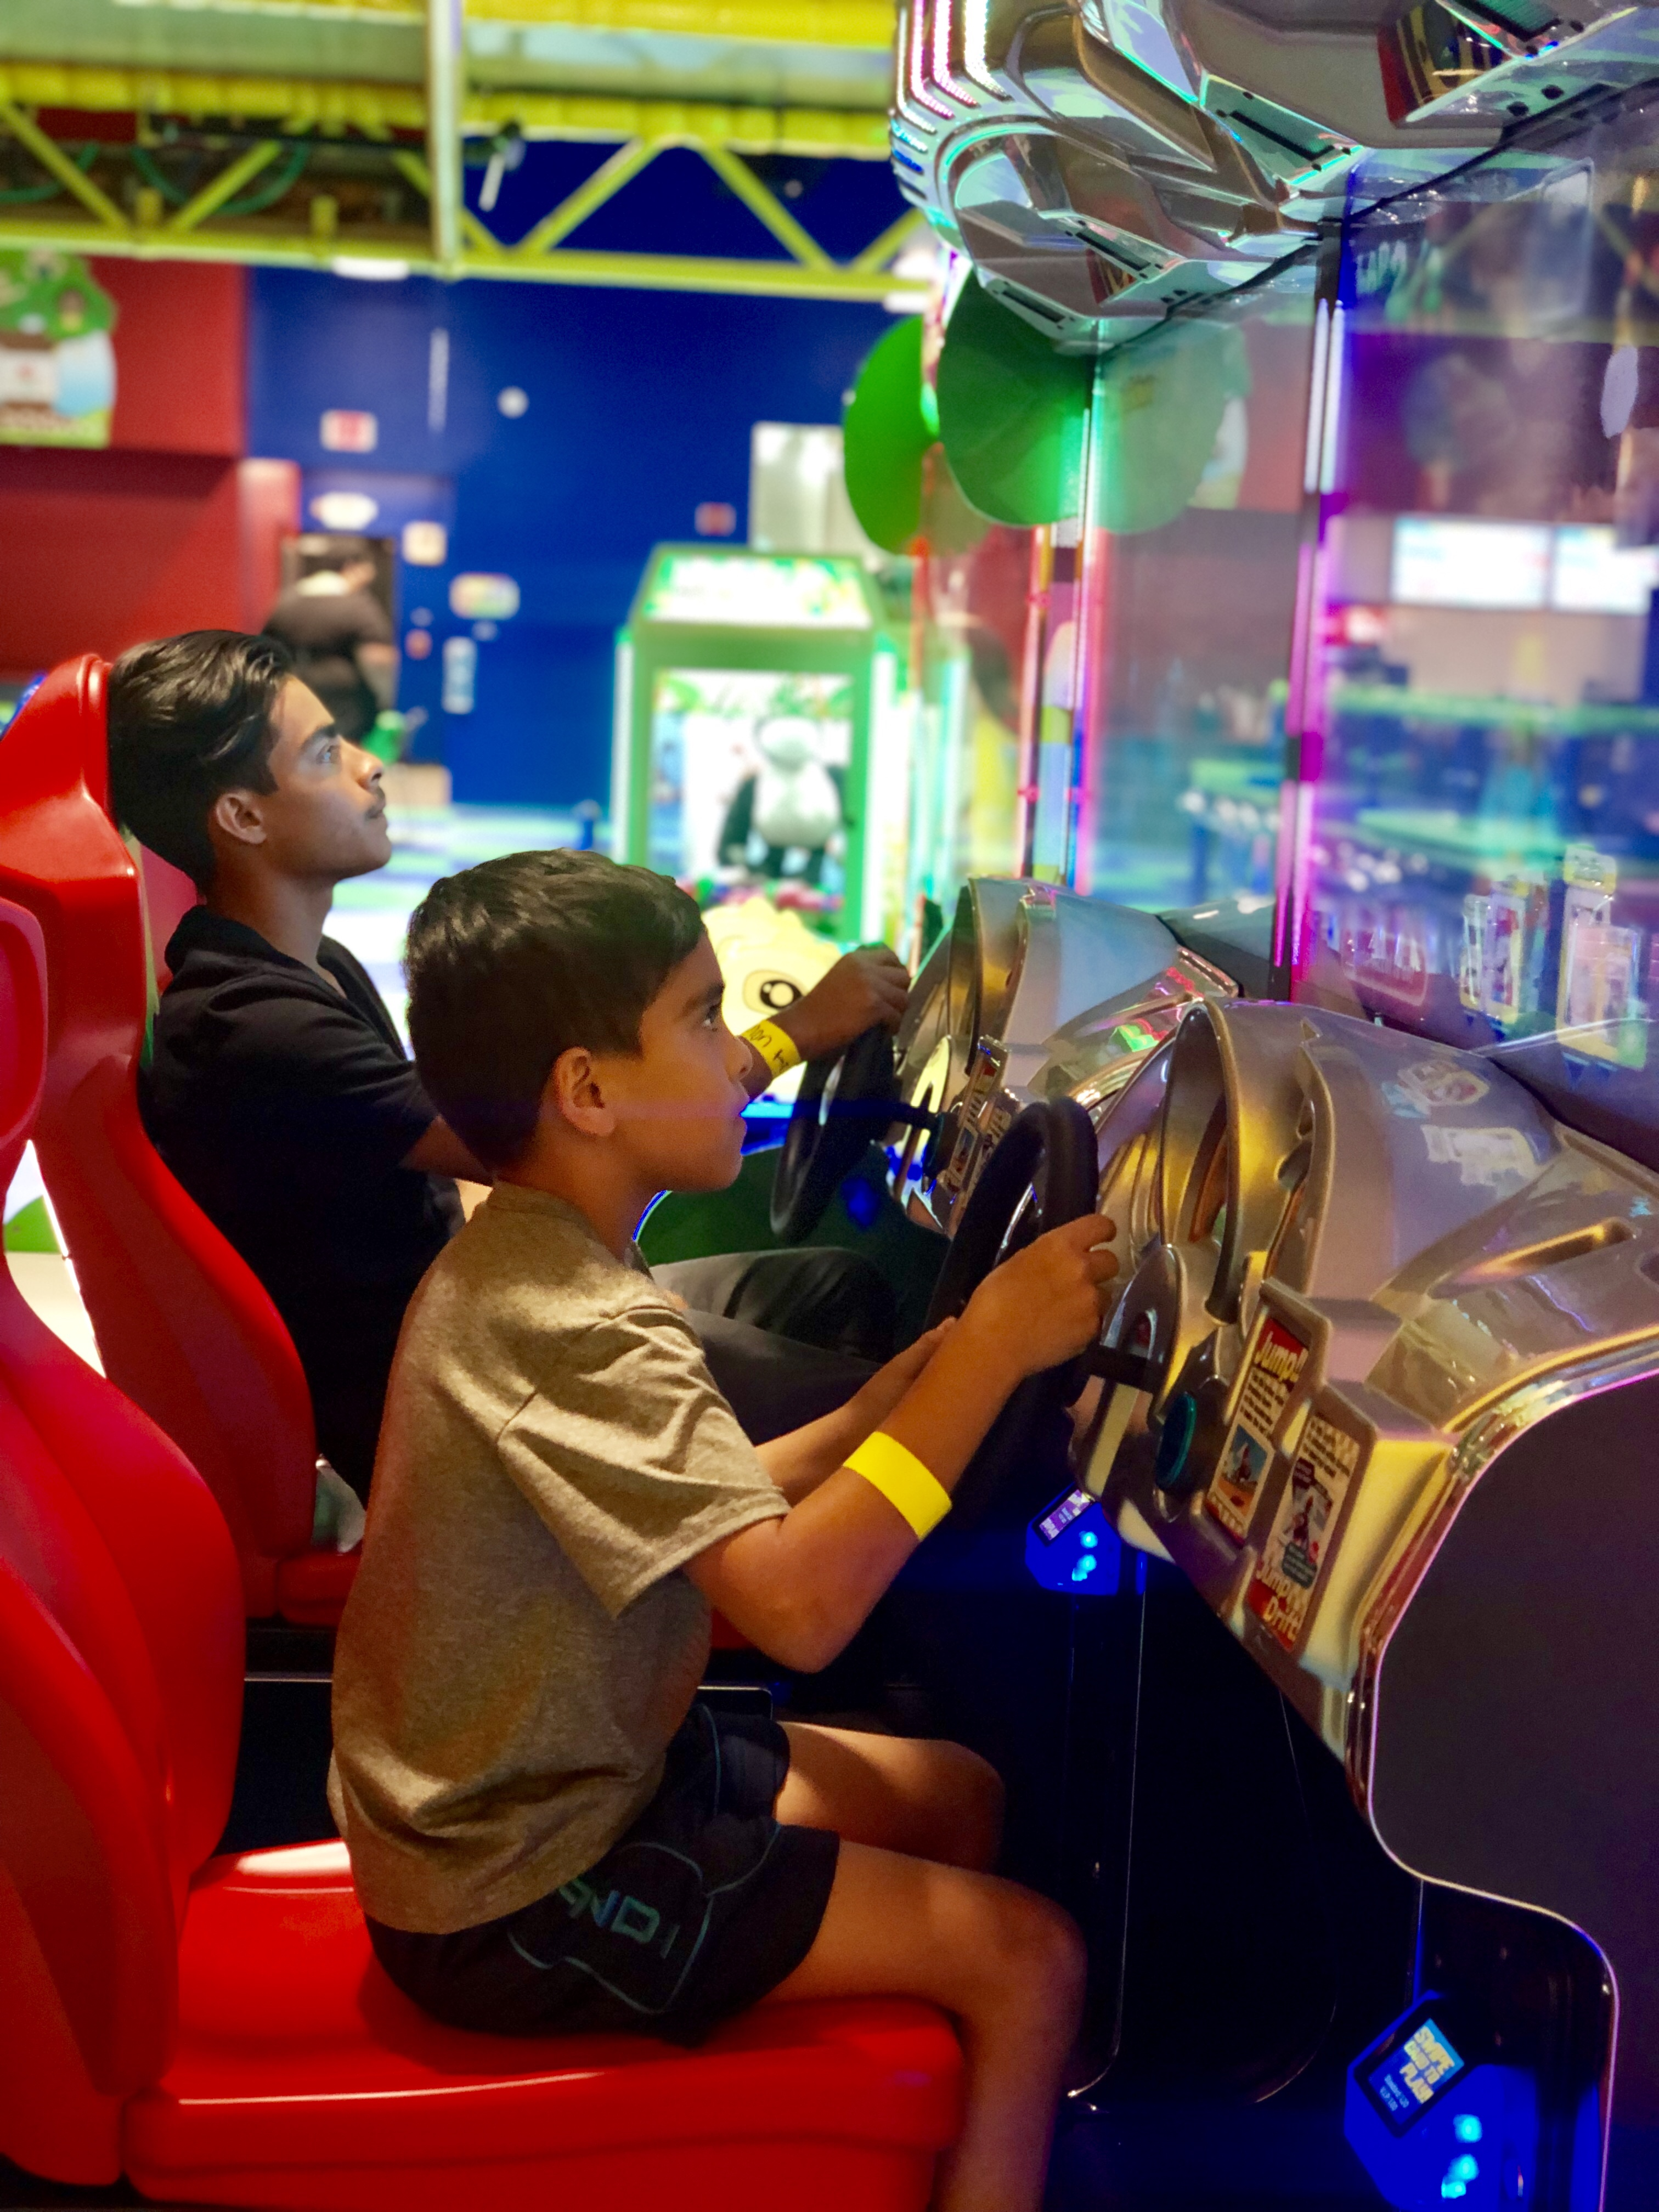 Two boys playing a racing arcade game